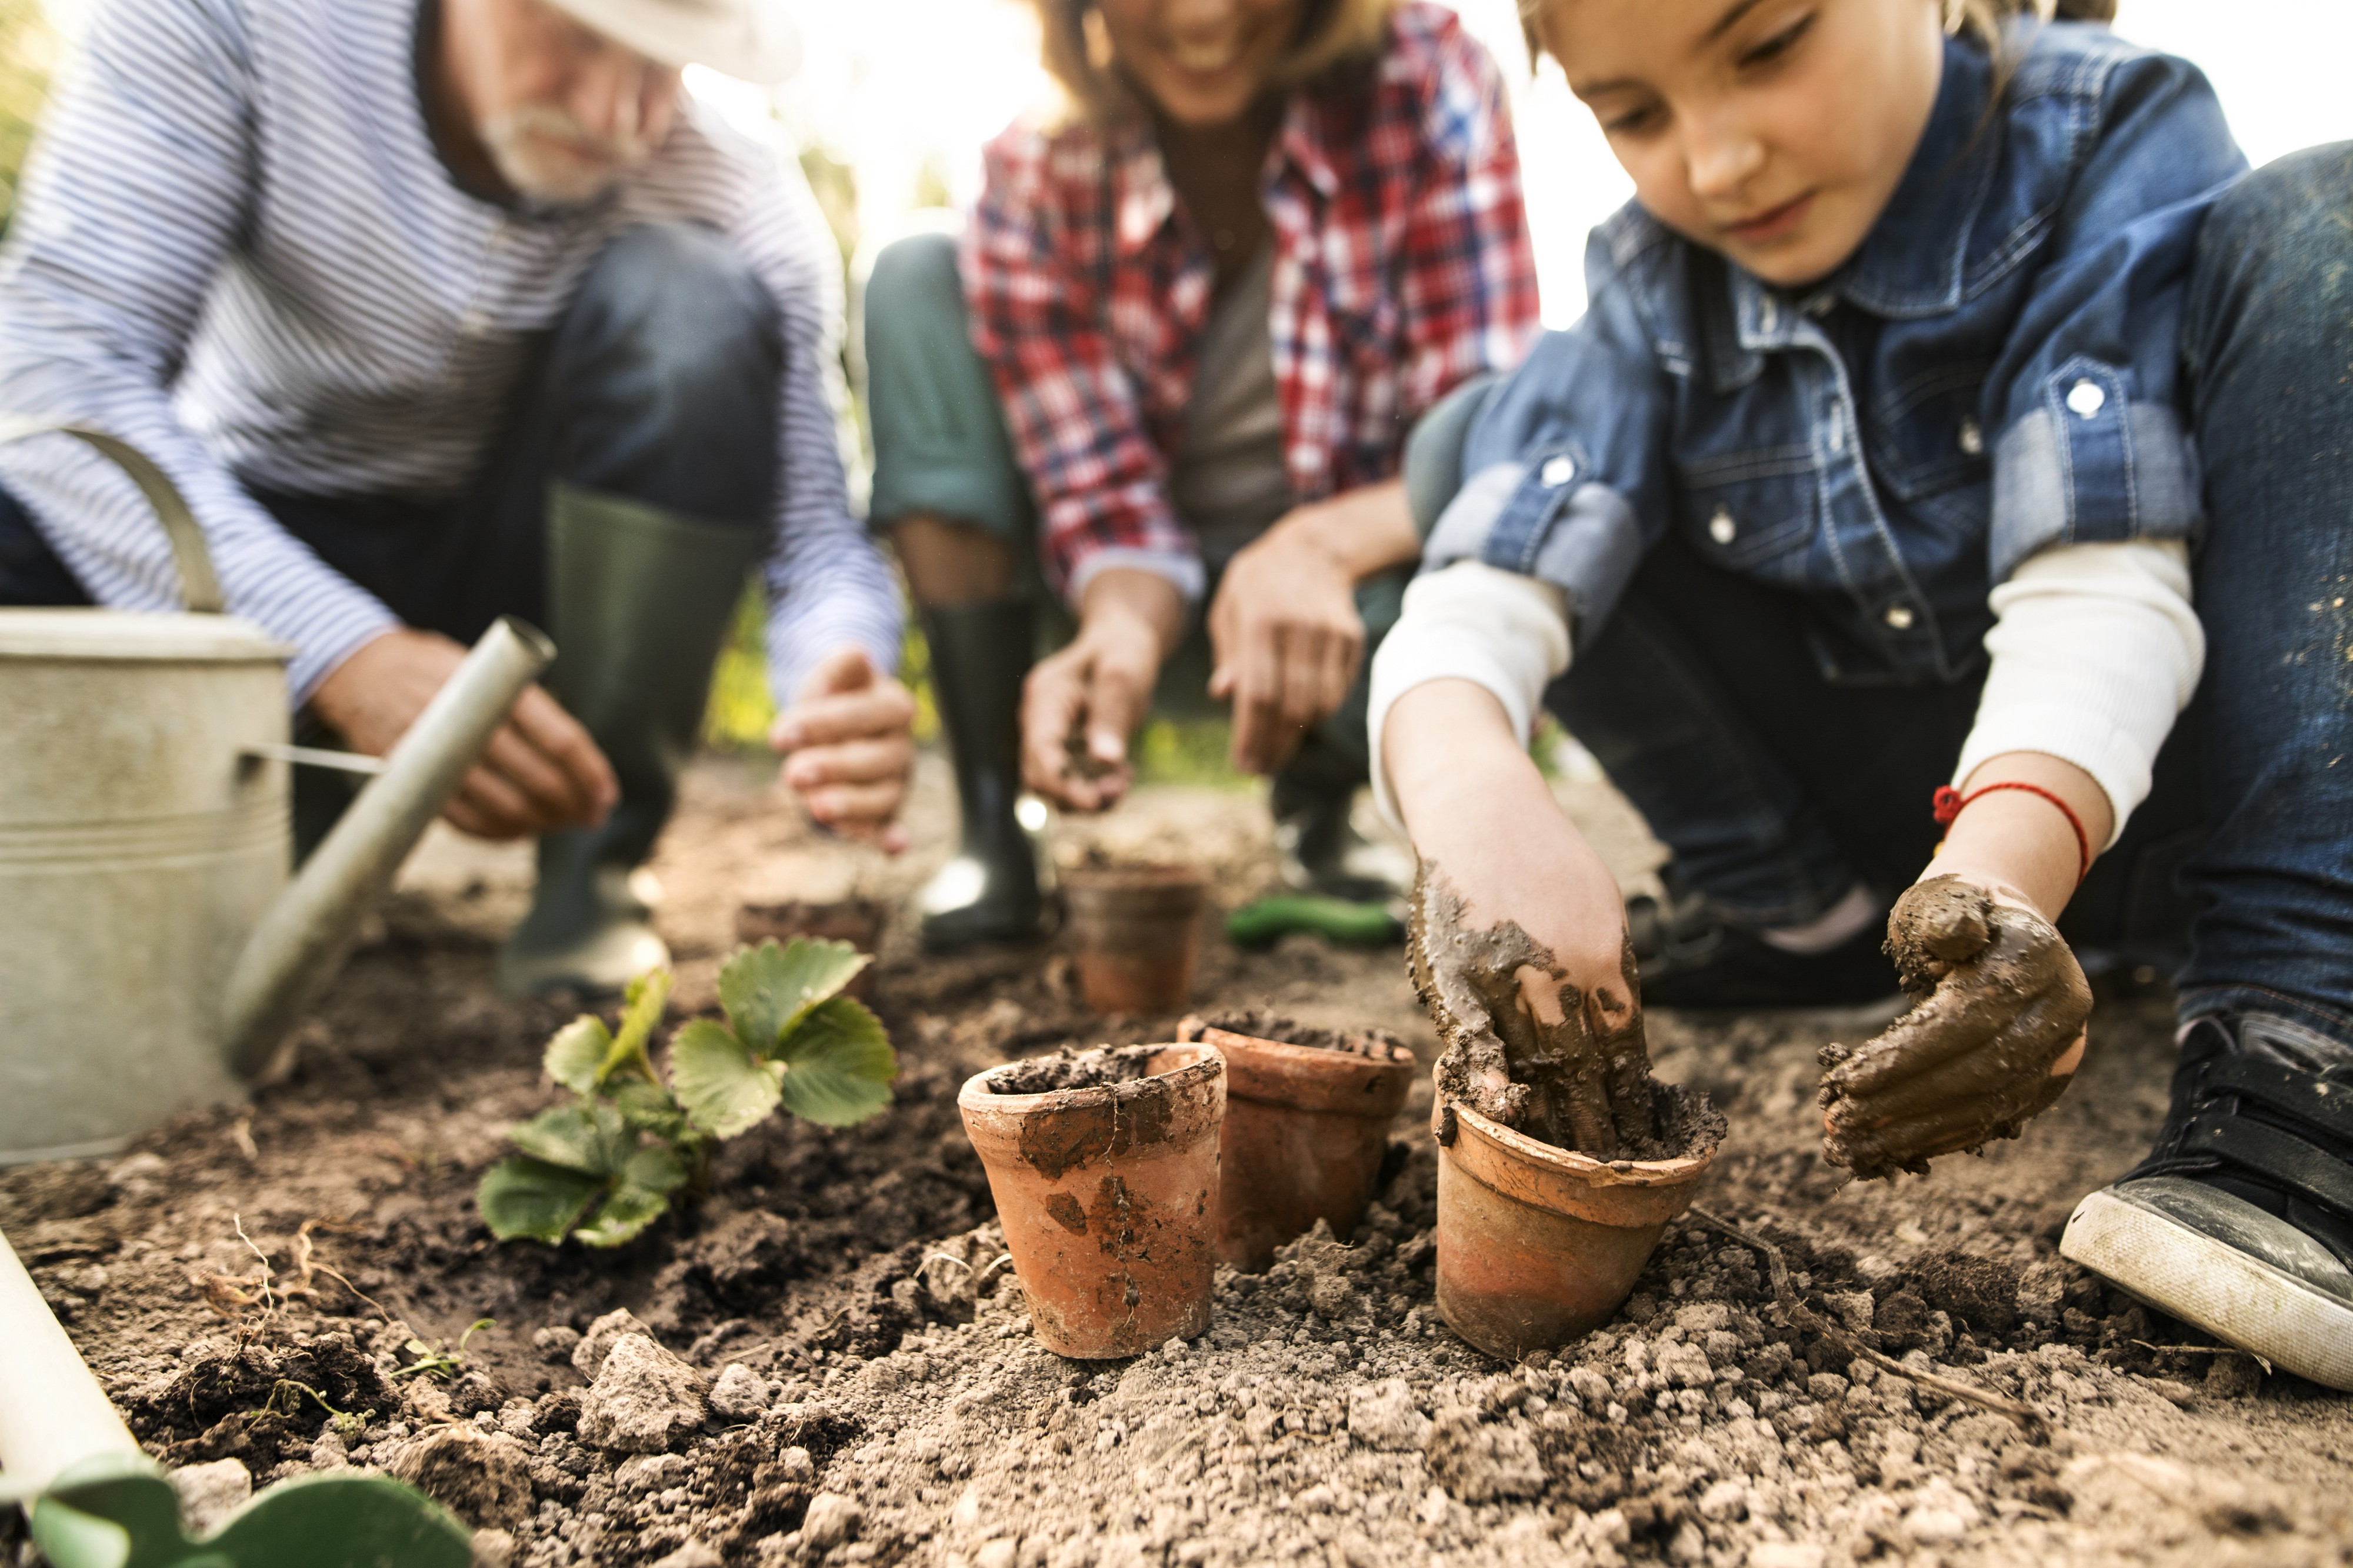 A child fills small terra cotta pots while adults tend to strawberry plants.